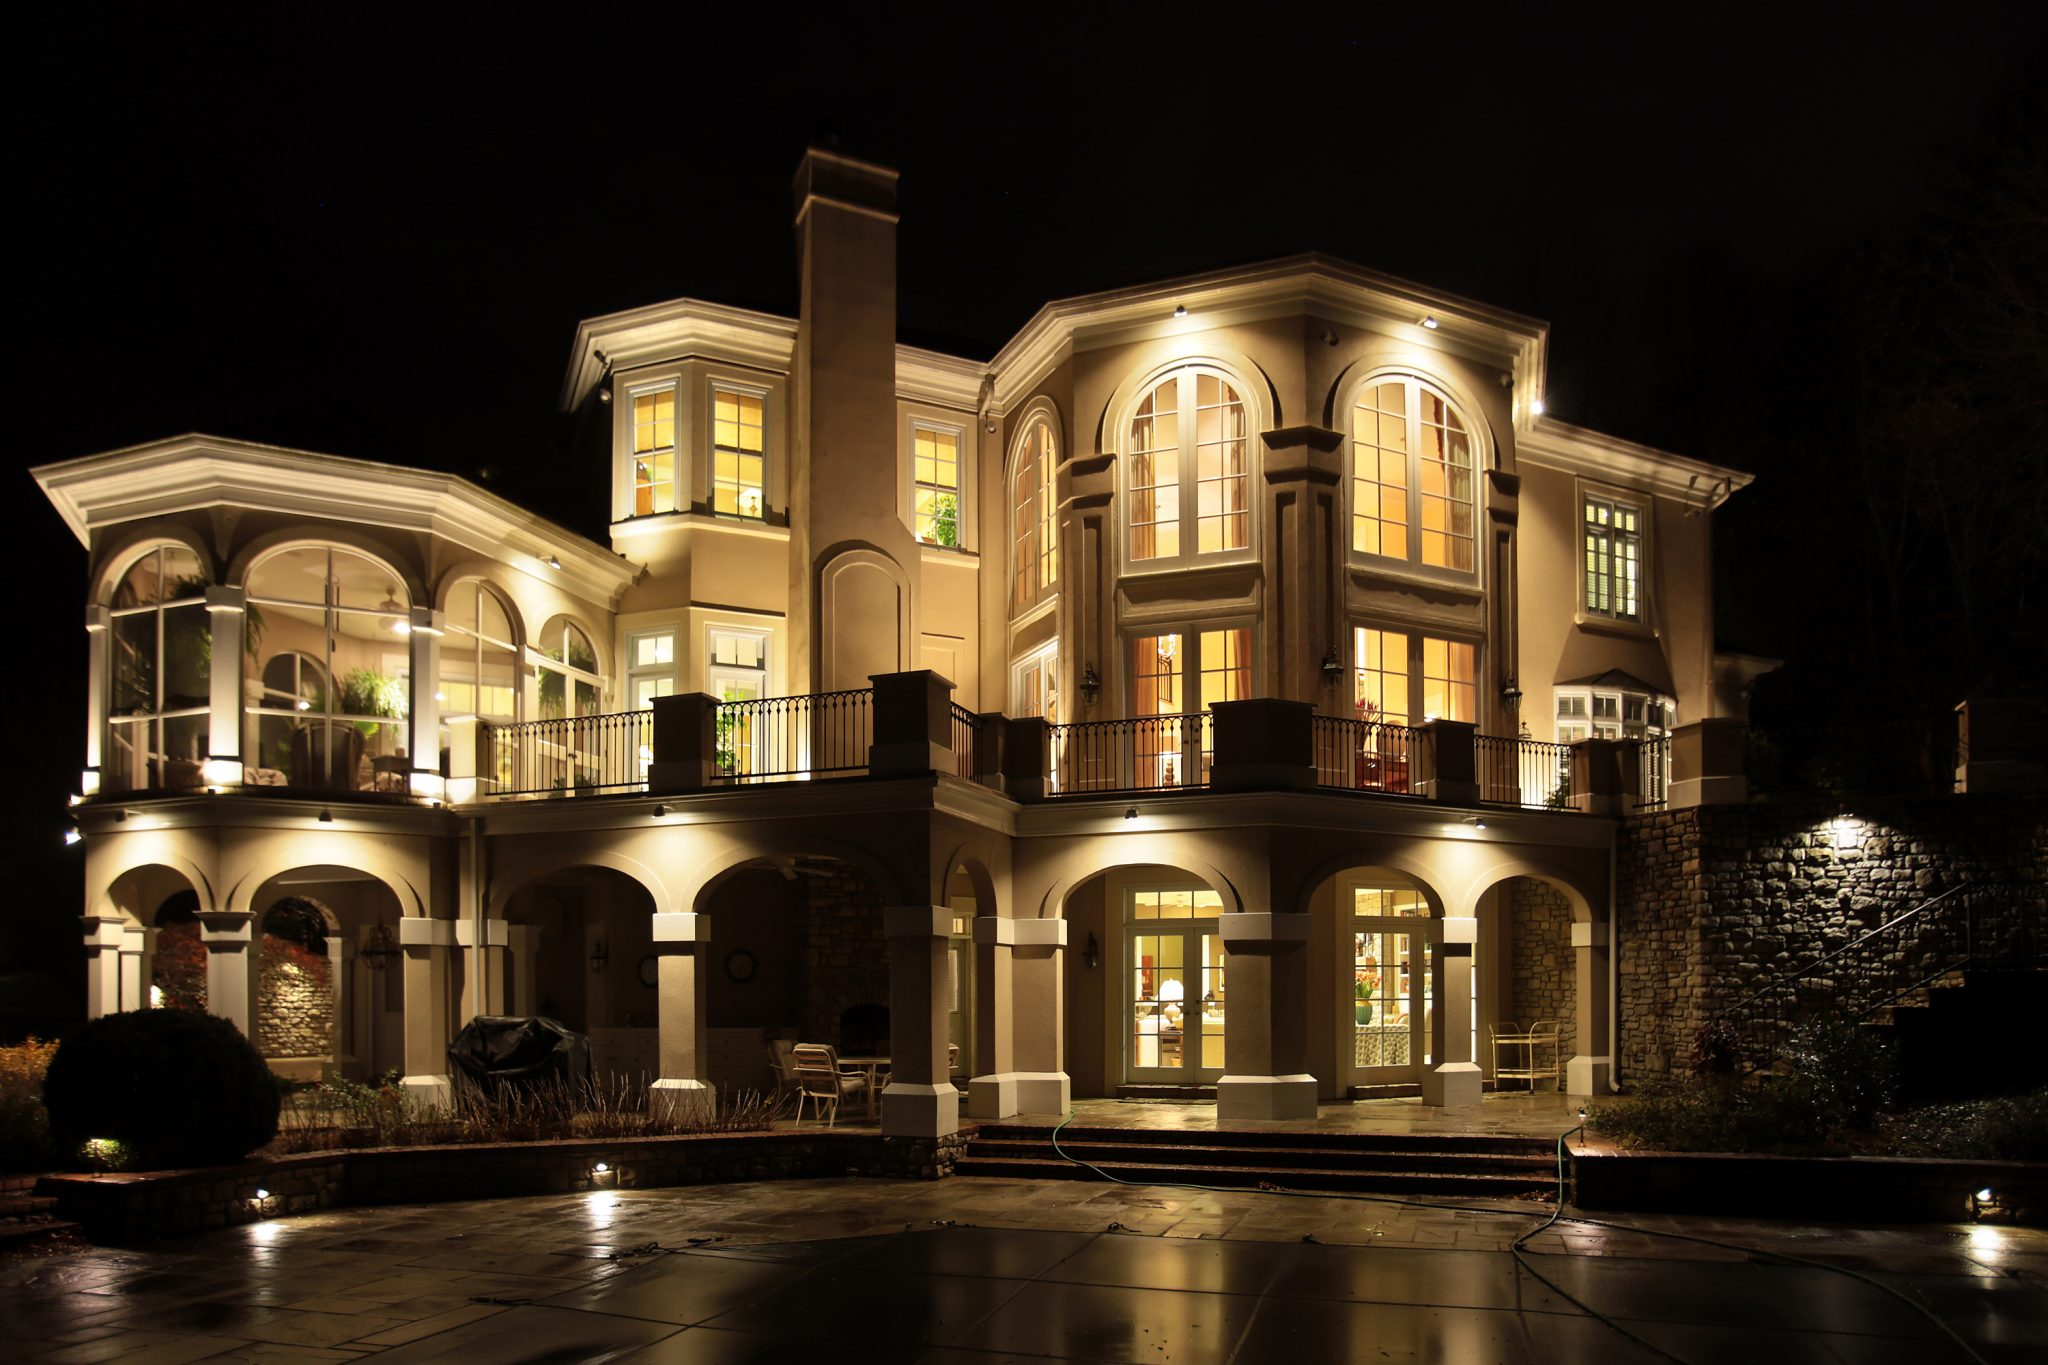 2016 lighting awards the association of outdoor lighting lighting award of merit large residential lighting david reed clvlt niteliters inc project river green manor mozeypictures Image collections